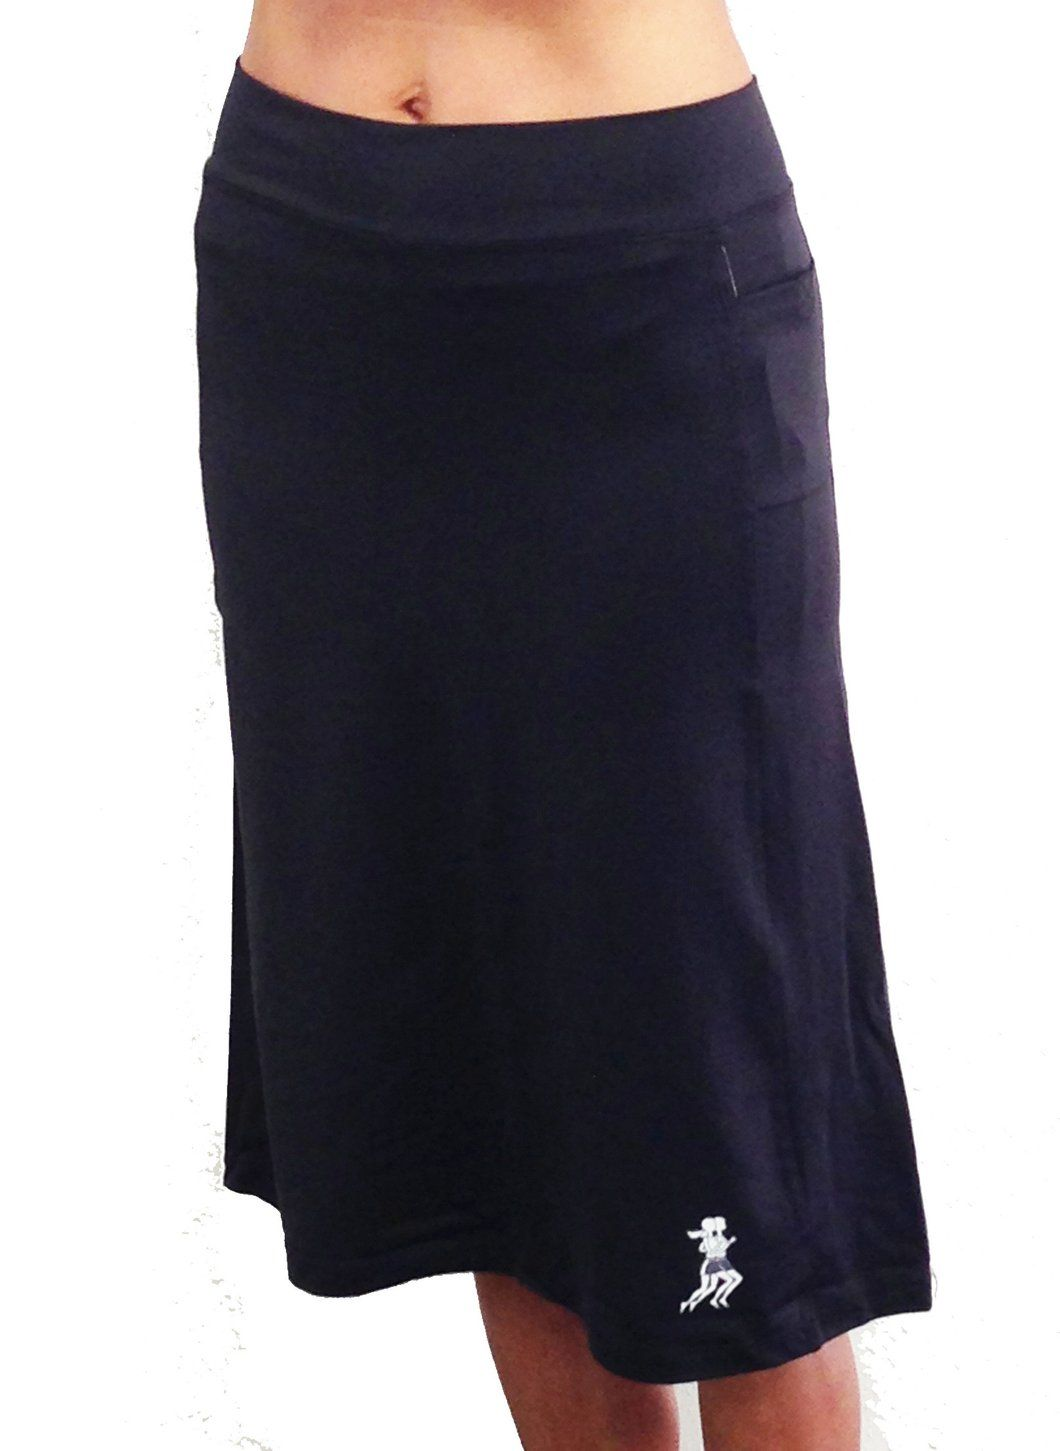 57f93726aa Black Spirit Athletic Skirt in 2019 | Wish list | Athletic skirts ...